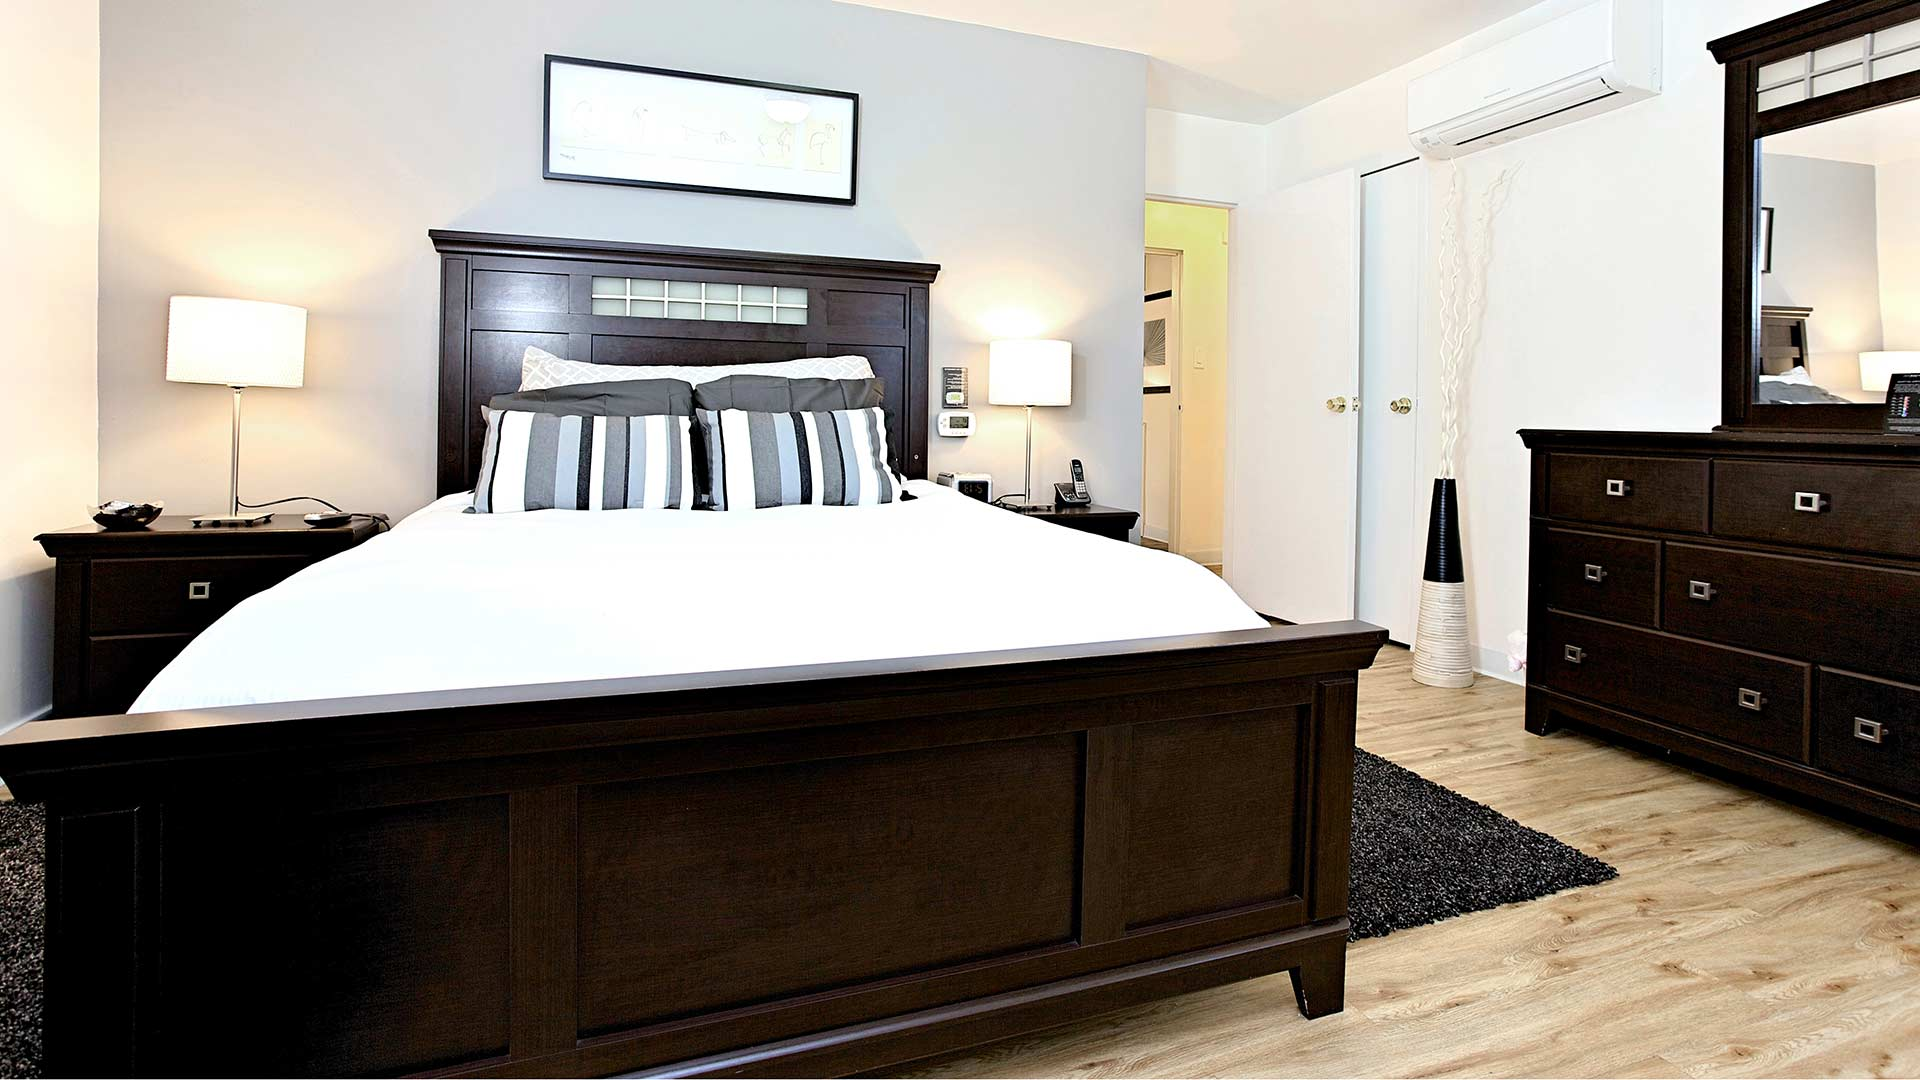 Image Gallery Of Our Two Bedroom Suites. Two Bedroom Suites   Shadyside Inn All Suites Hotel Pittsburgh